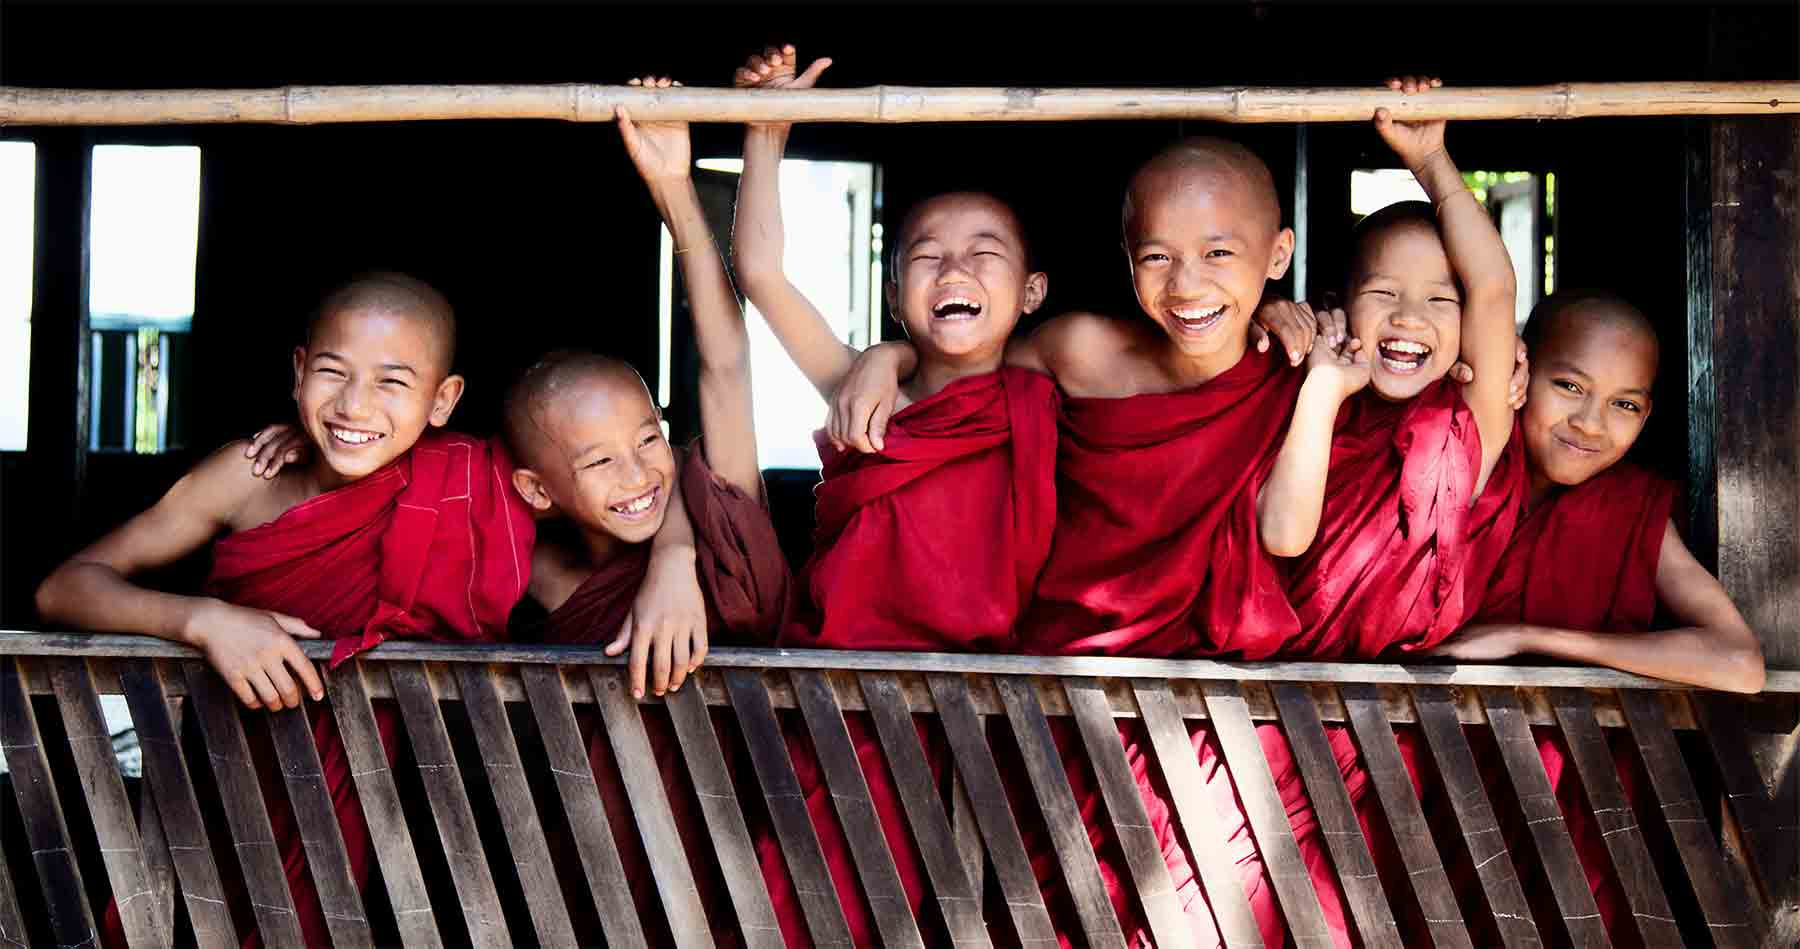 burma_monk_boys_laughing_intro